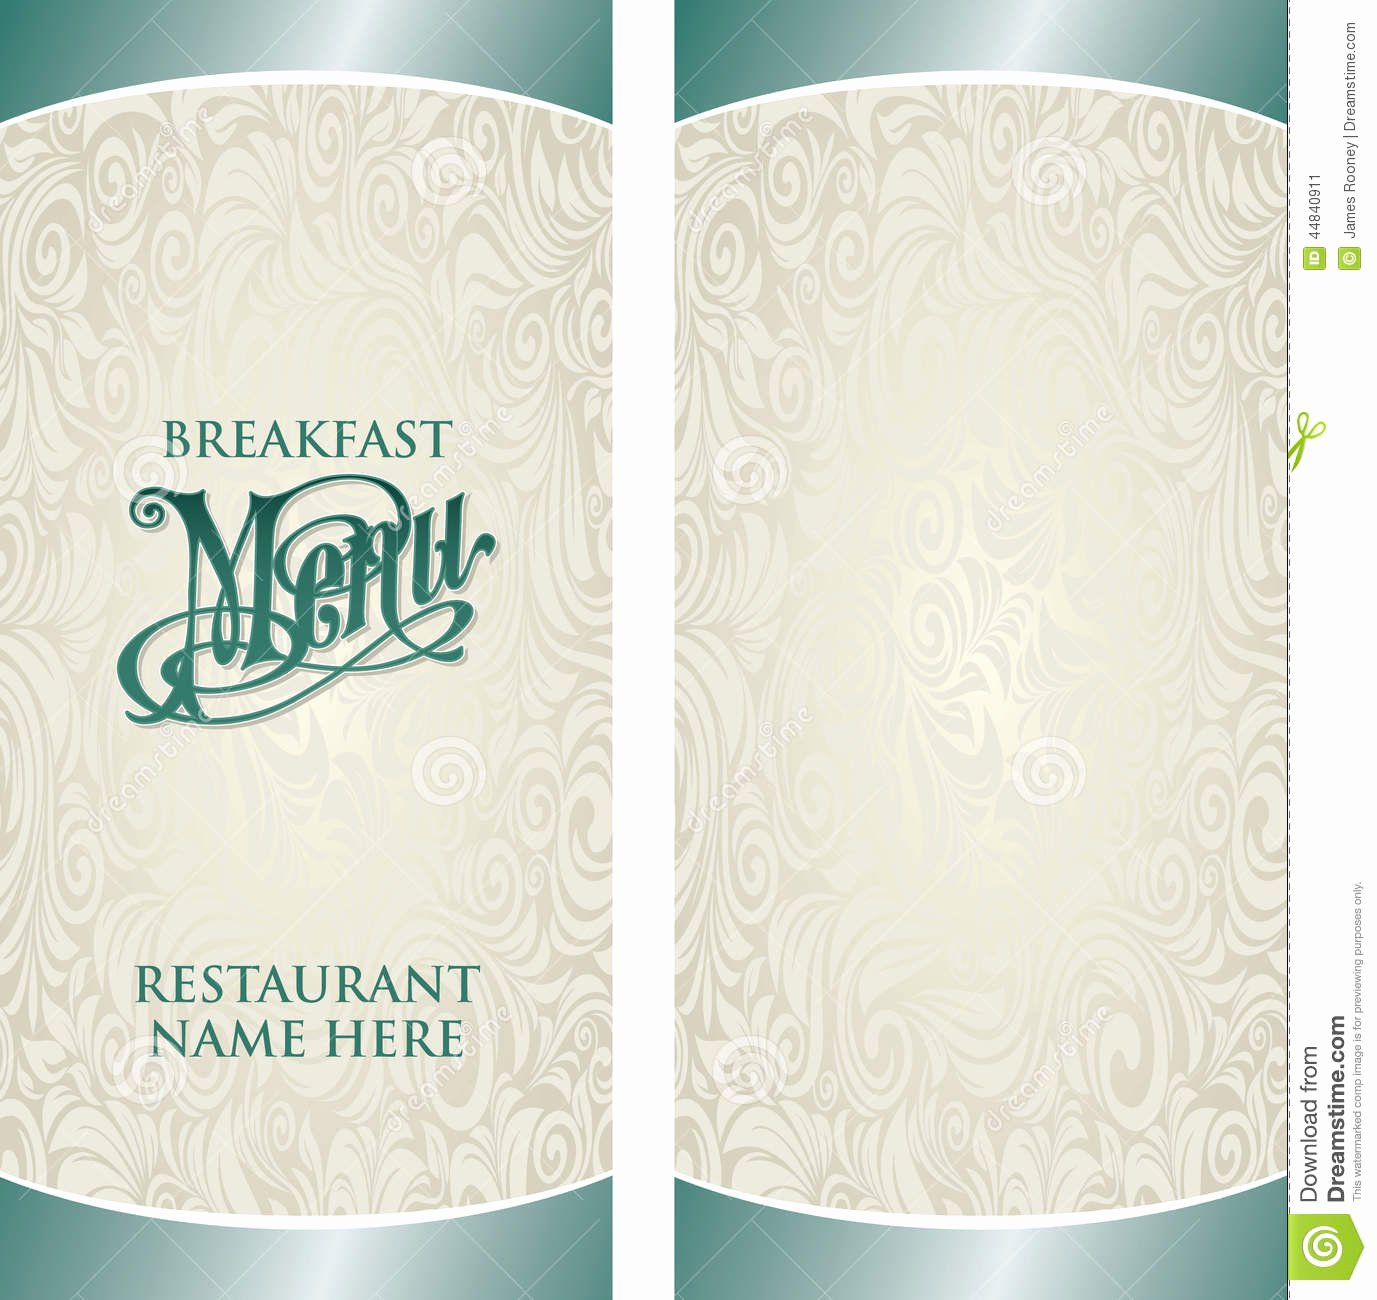 Blank Restaurant Menu Template New Menu Template Stock Vector Illustration Of Elegant